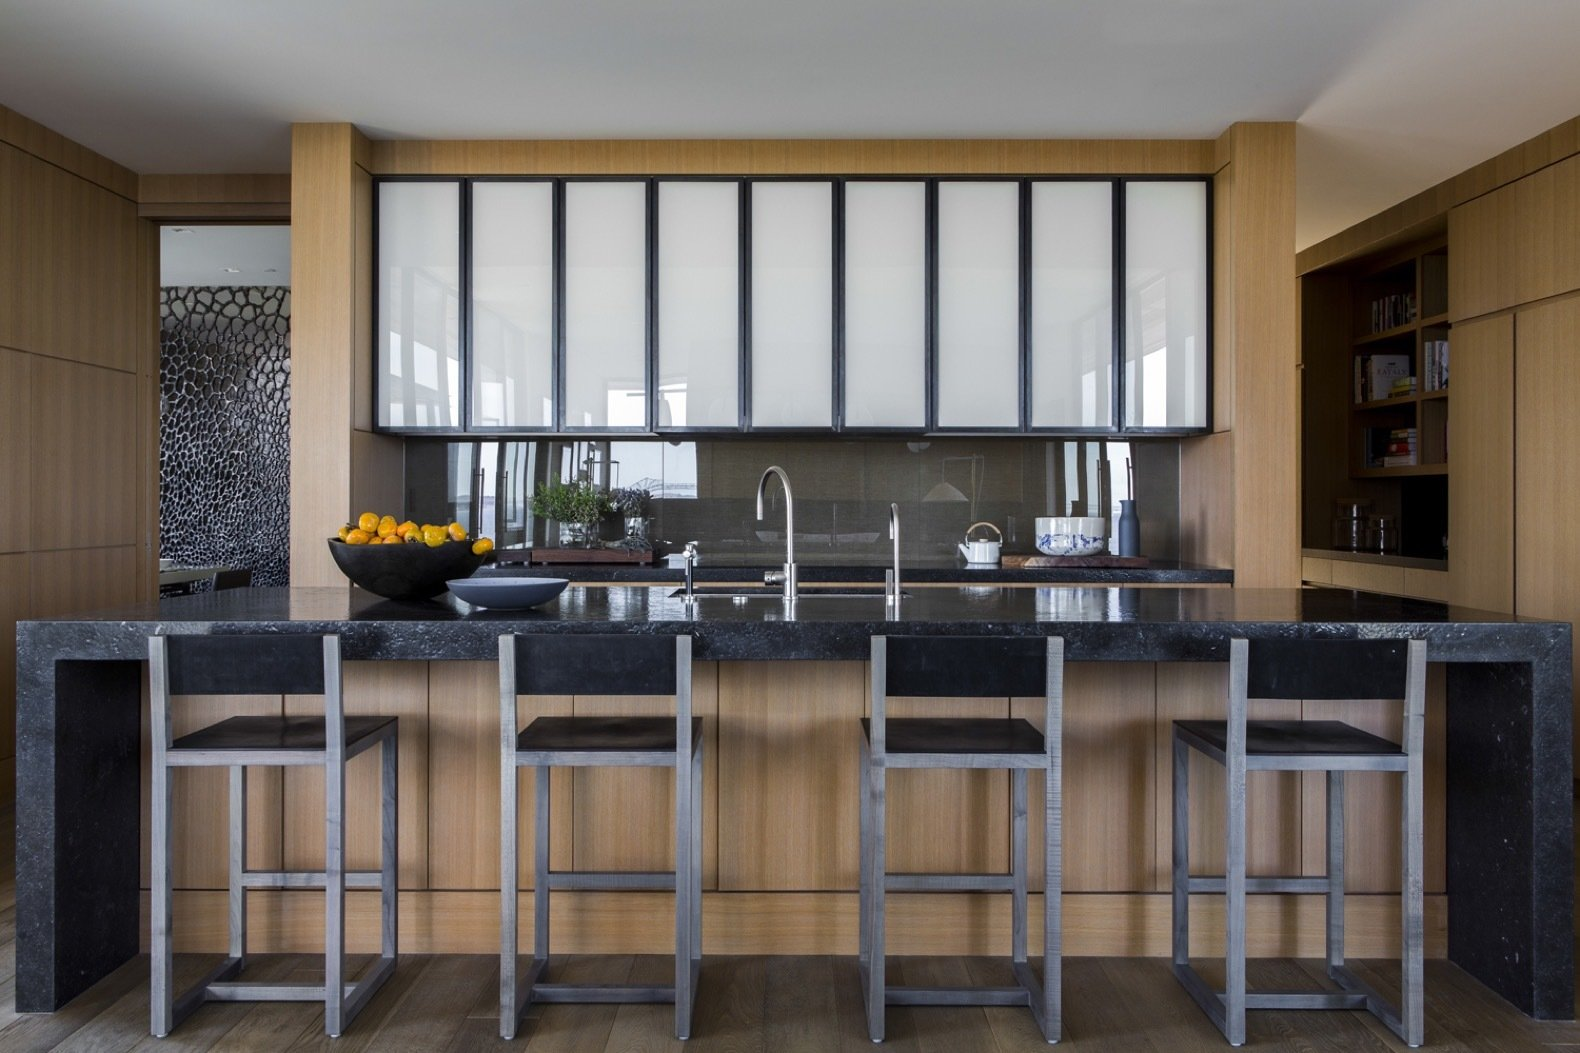 Kitchen, Granite Counter, White Cabinet, Cooktops, Wood Cabinet, Medium Hardwood Floor, and Undermount Sink BDDW bar stools are combined with a waterfall-edge Aged Petite Granit kitchen island.   Photo 14 of 14 in An Energy-Conscious Home Gets Woven Into a Waterfront Landscape